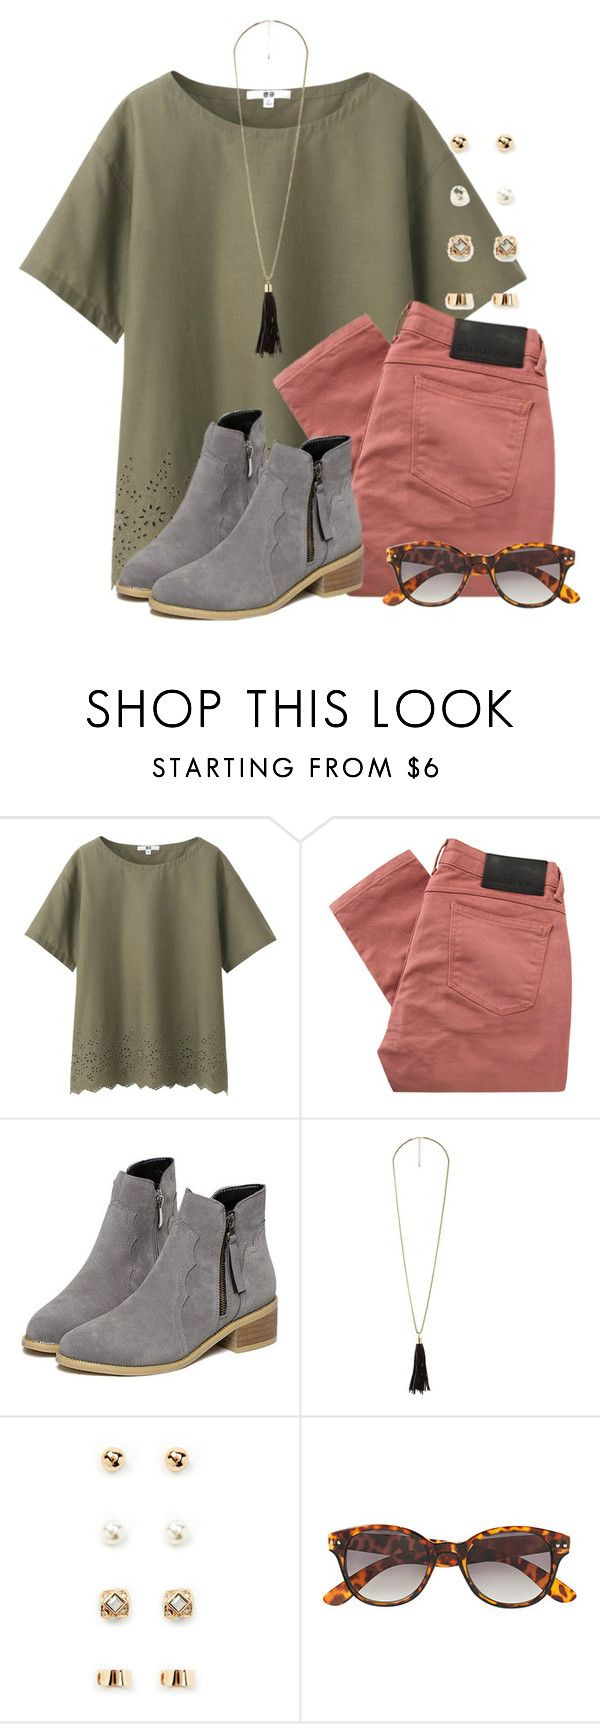 """I'm gonna get these shoes for fall🍁"" by flroasburn ❤ liked on Polyvore featuring Uniqlo, Religion Clothing, Charlotte Russe, Forever 21 and H&M"